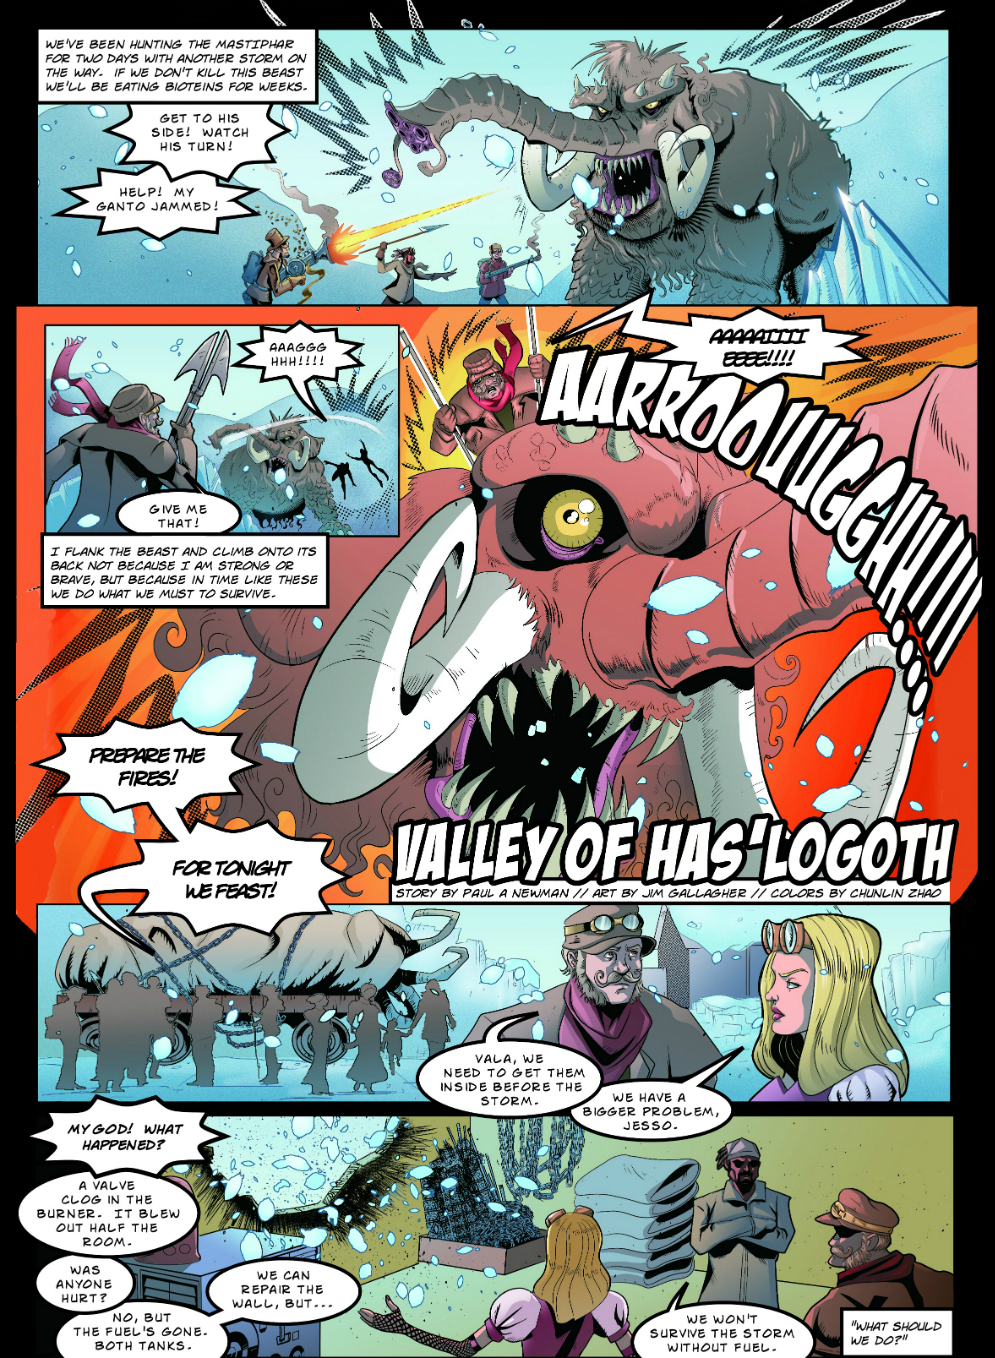 Valley of Has'Logoth page 1